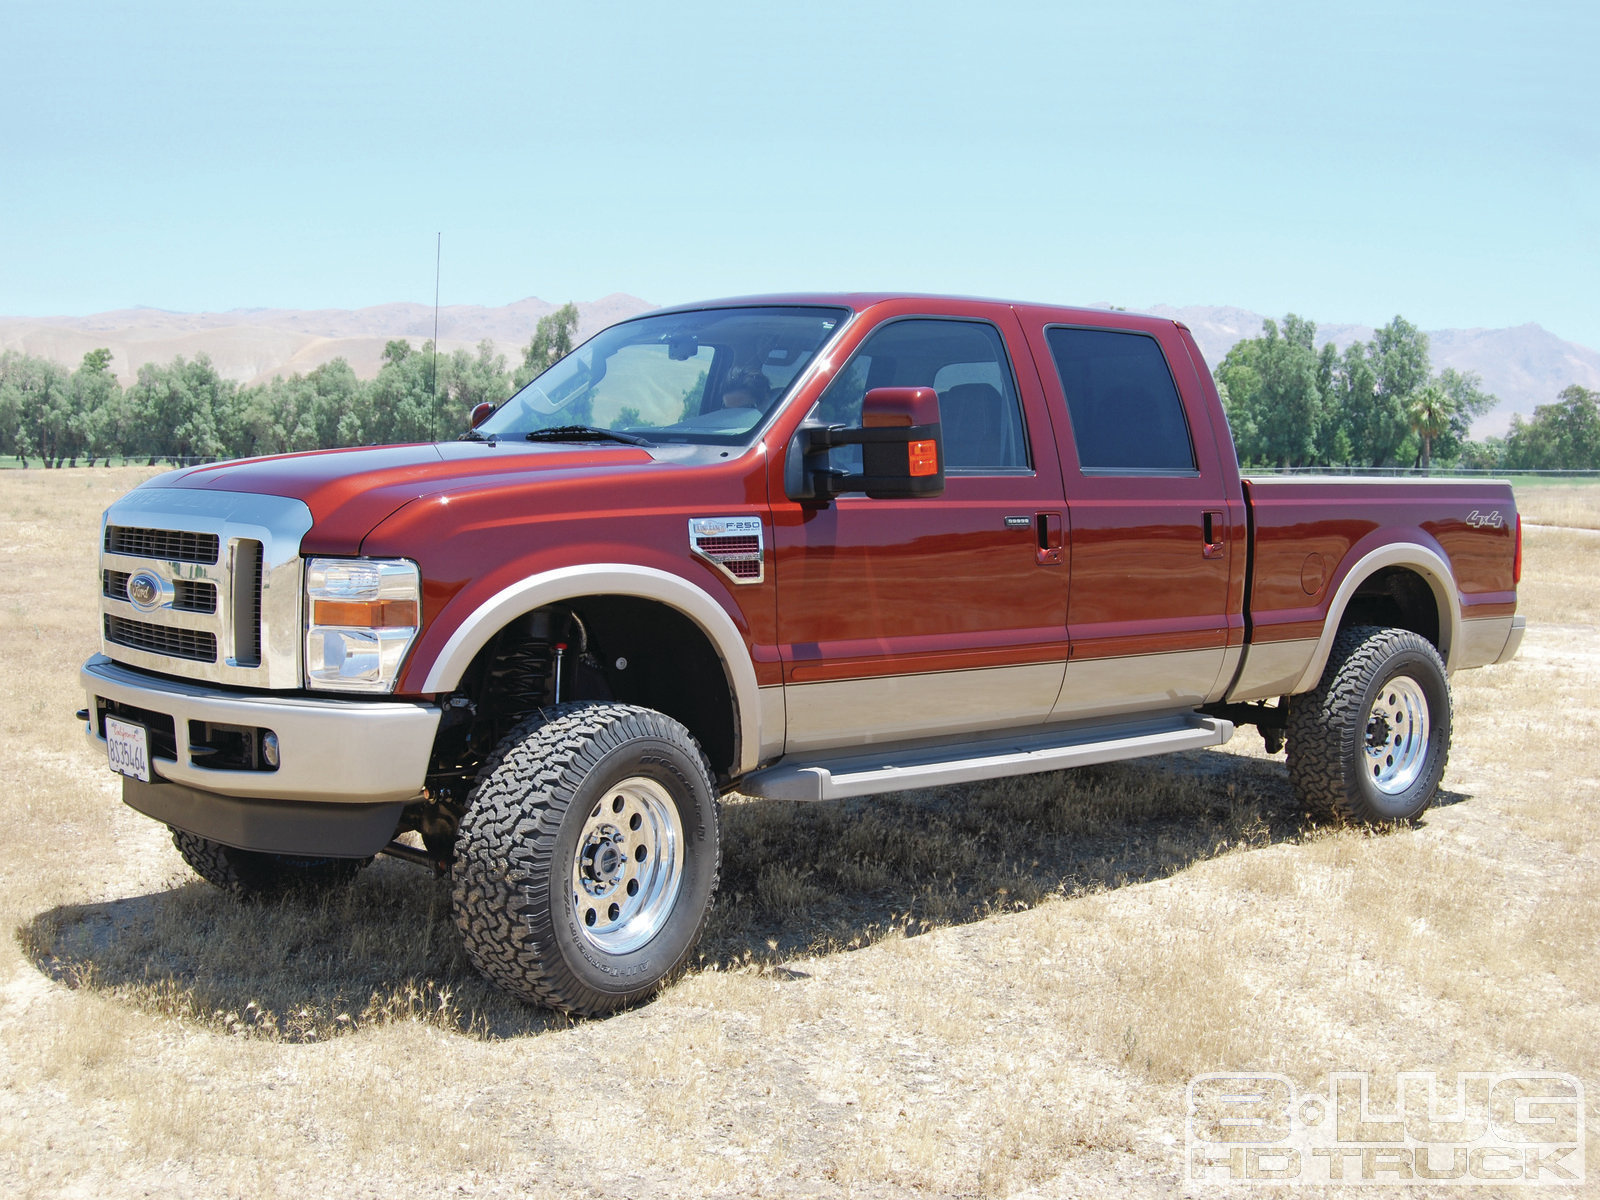 2008 Ford F250 - Project KR, Part II Photo & Image Gallery